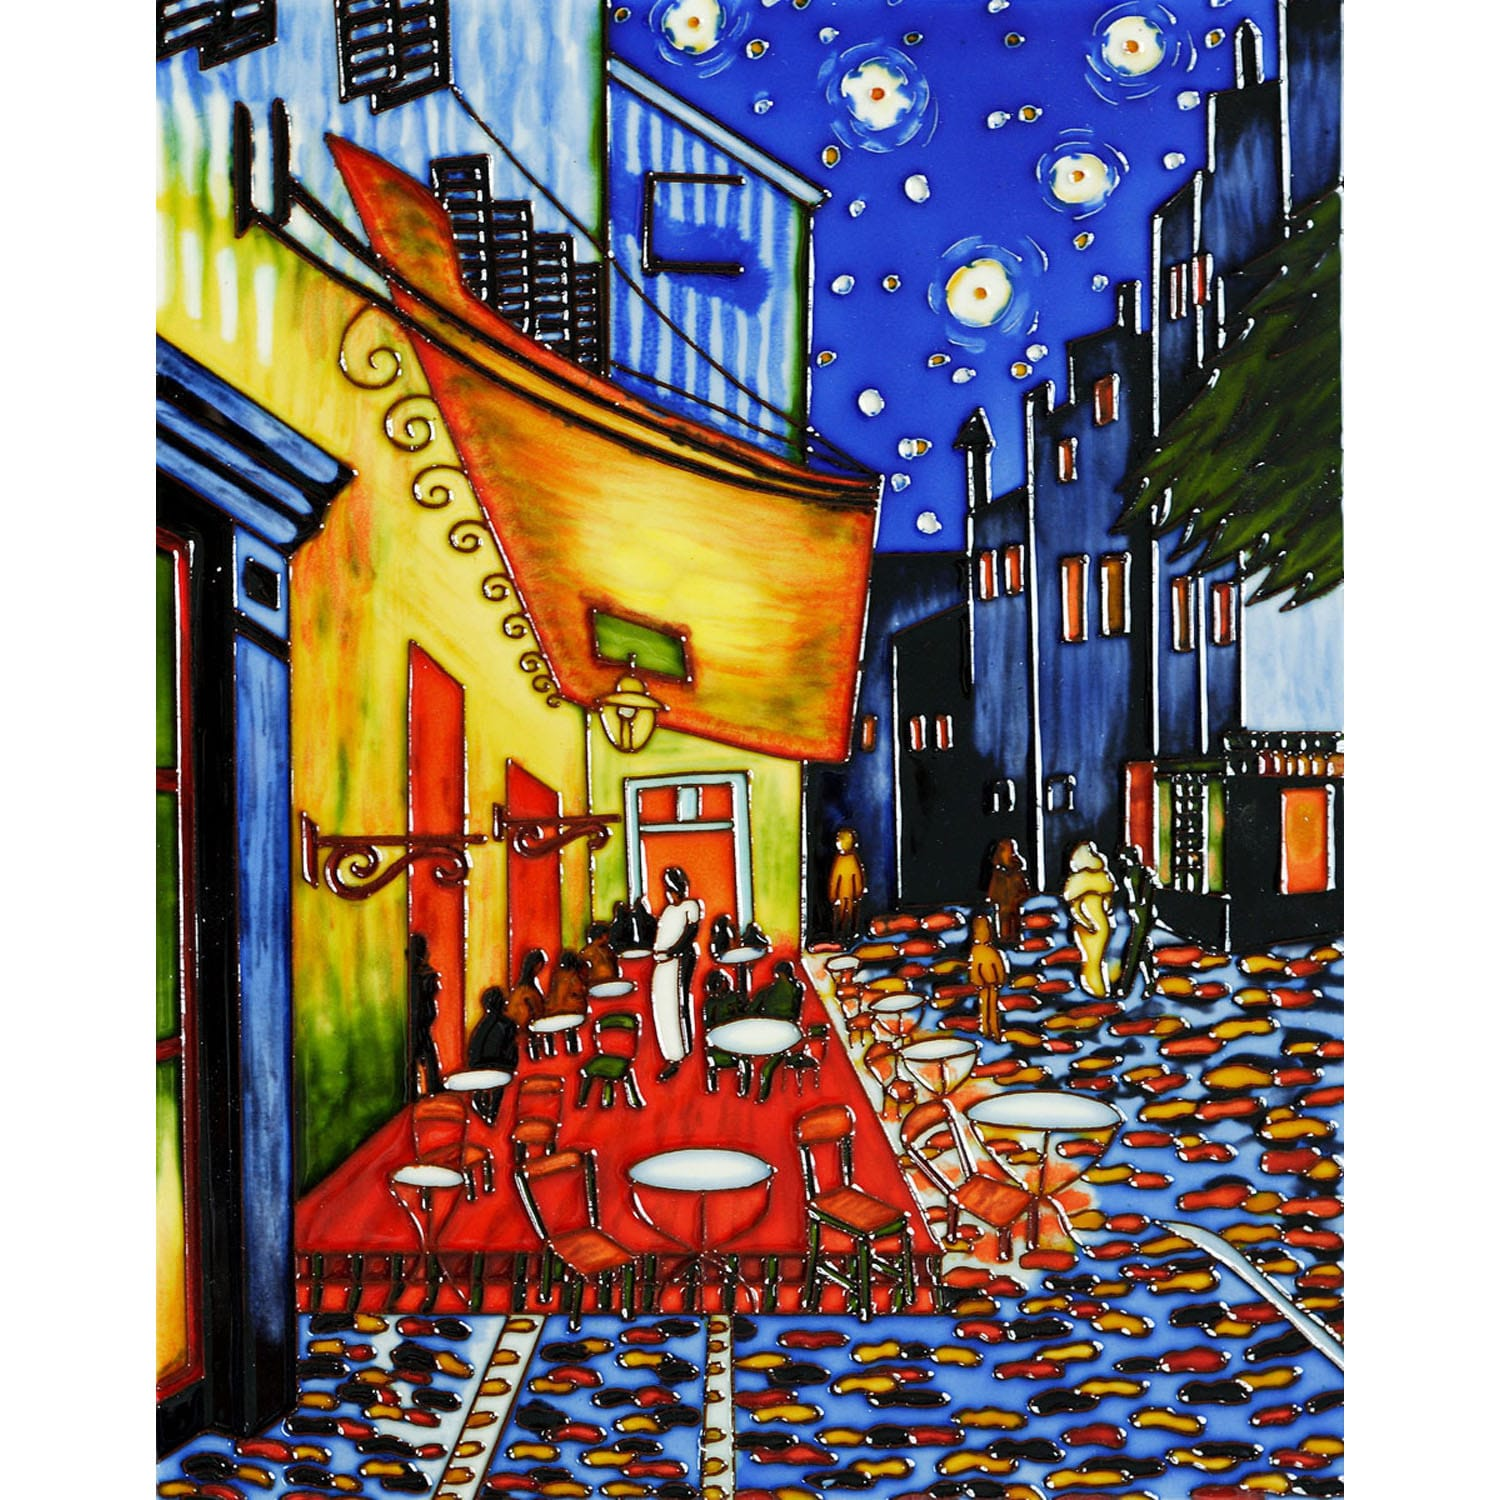 Vincent Van Gogh Cafe Terrace at Night Van Gogh 39 Cafe Terrace at